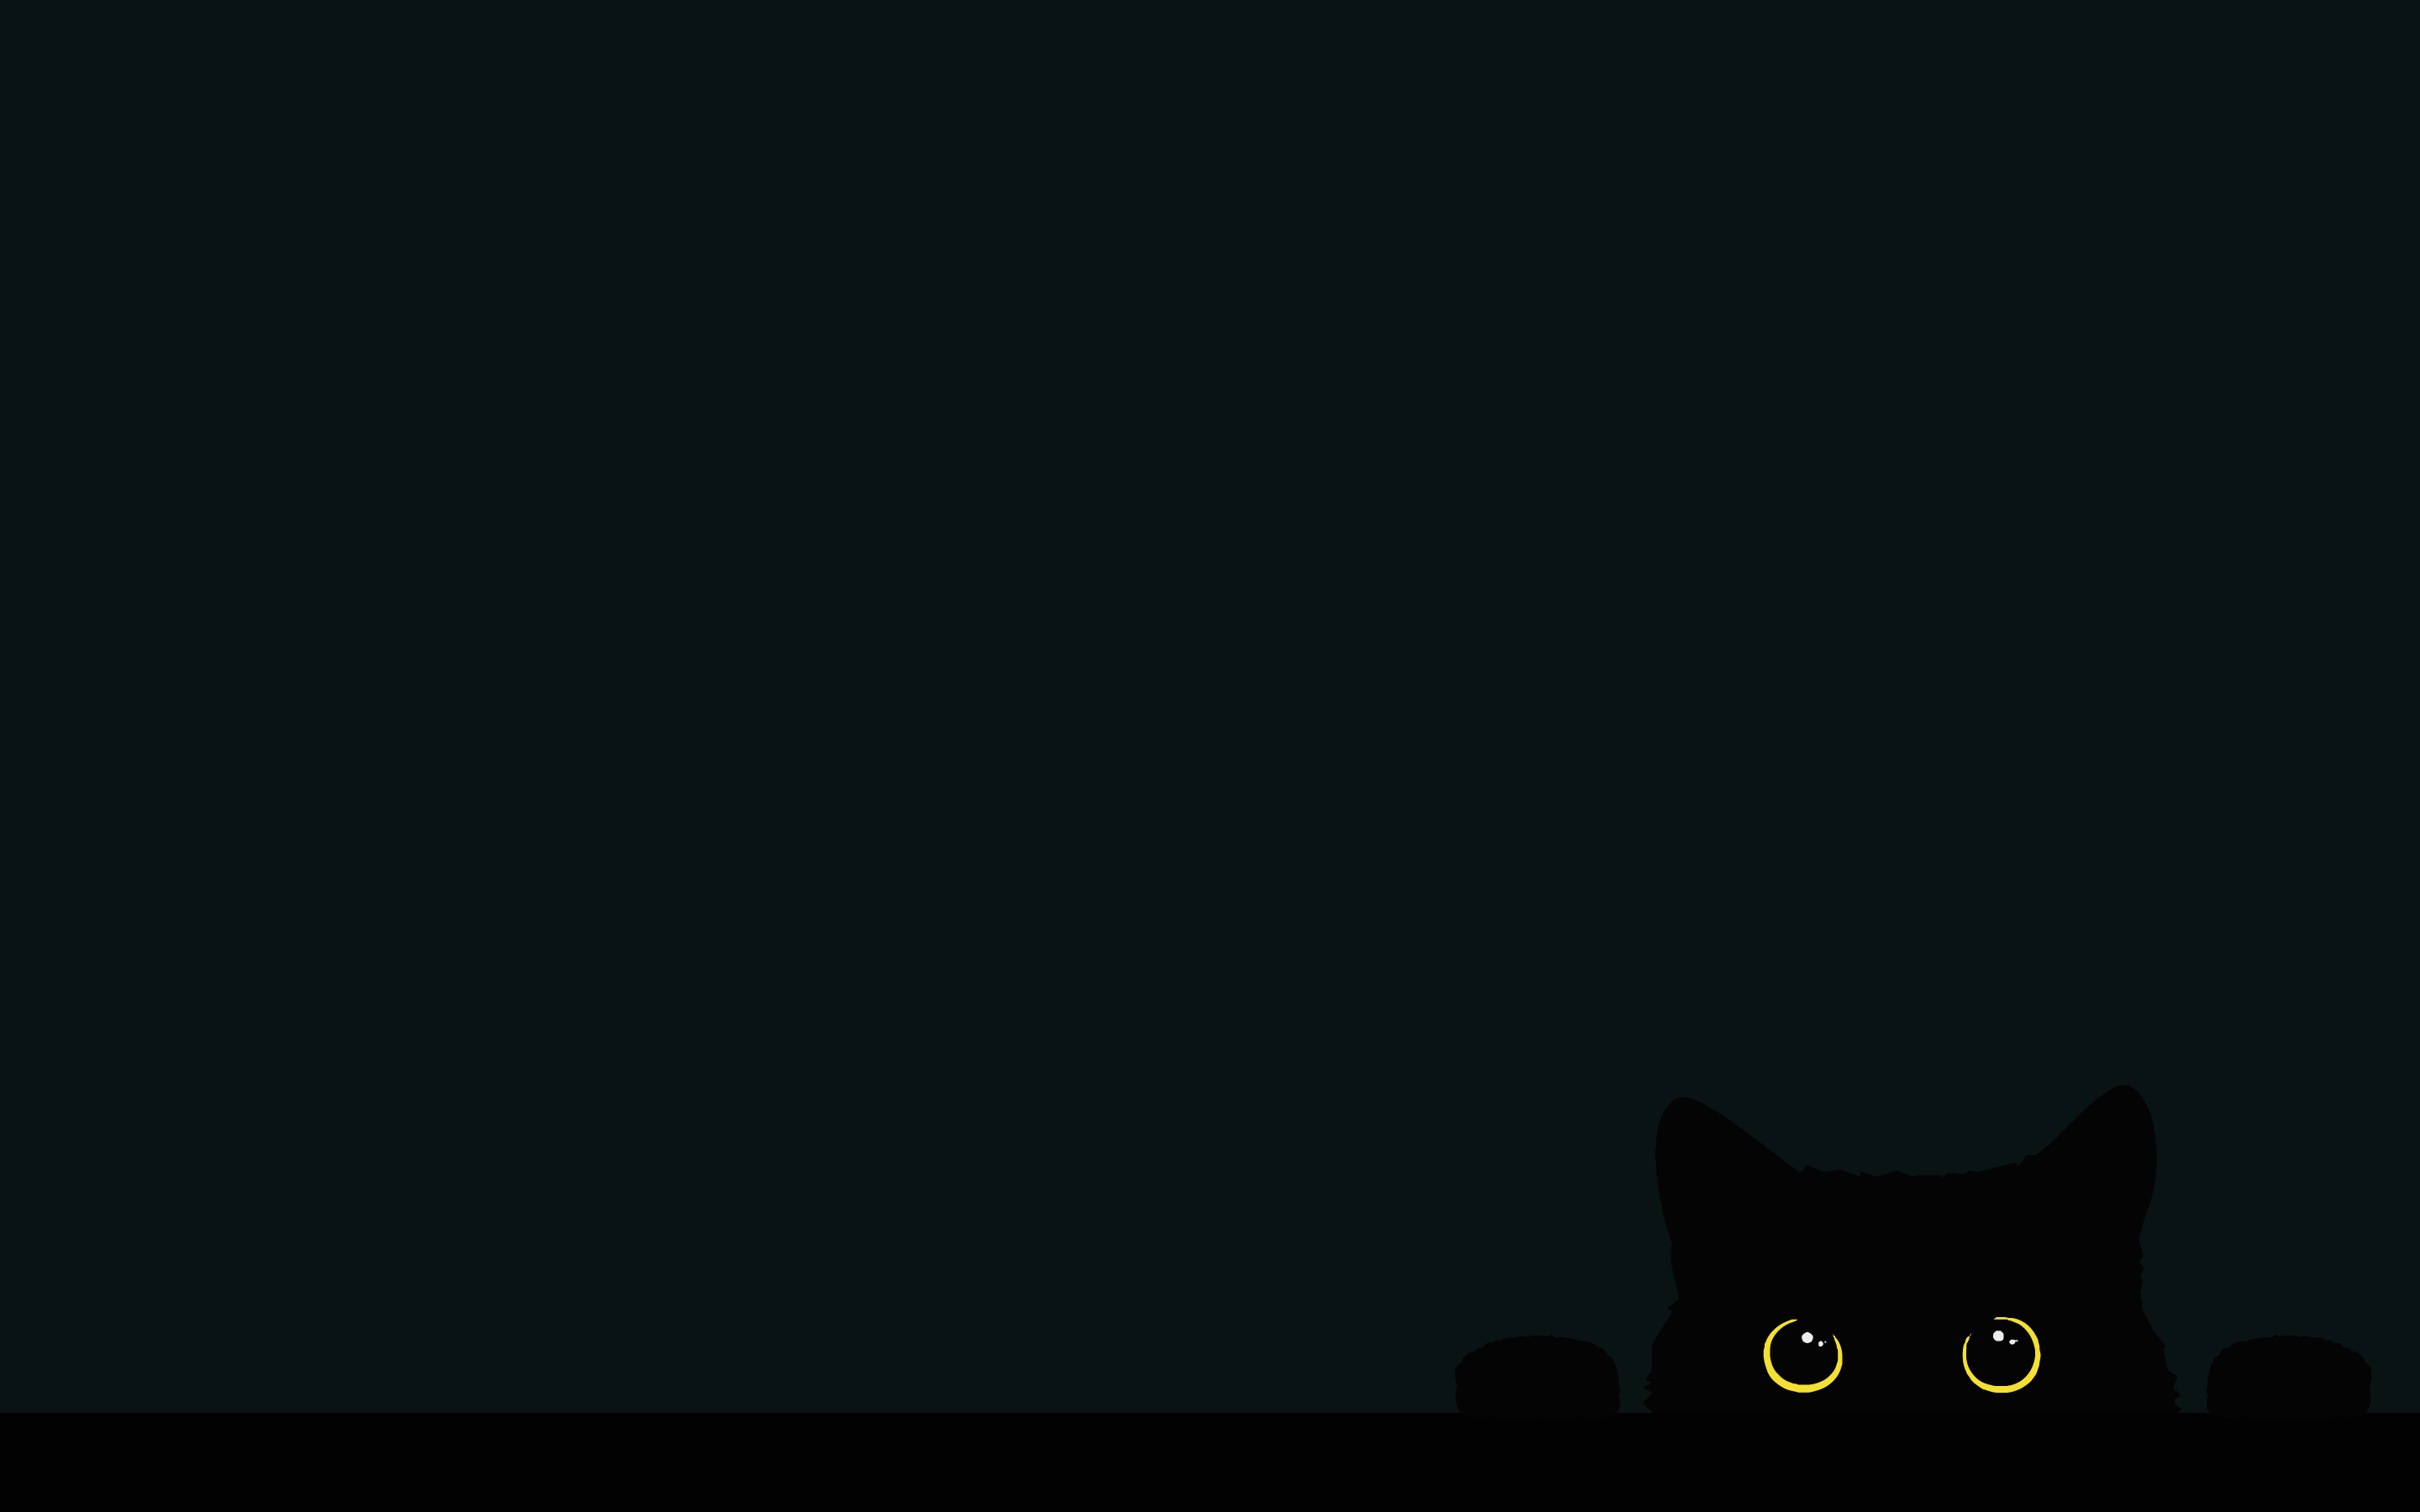 My Cat At 5am On The Edge Of The Bed 2880x1800 In 2020 Wallpaper Dekstop Laptop Wallpaper Desktop Wallpapers Cat Wallpaper